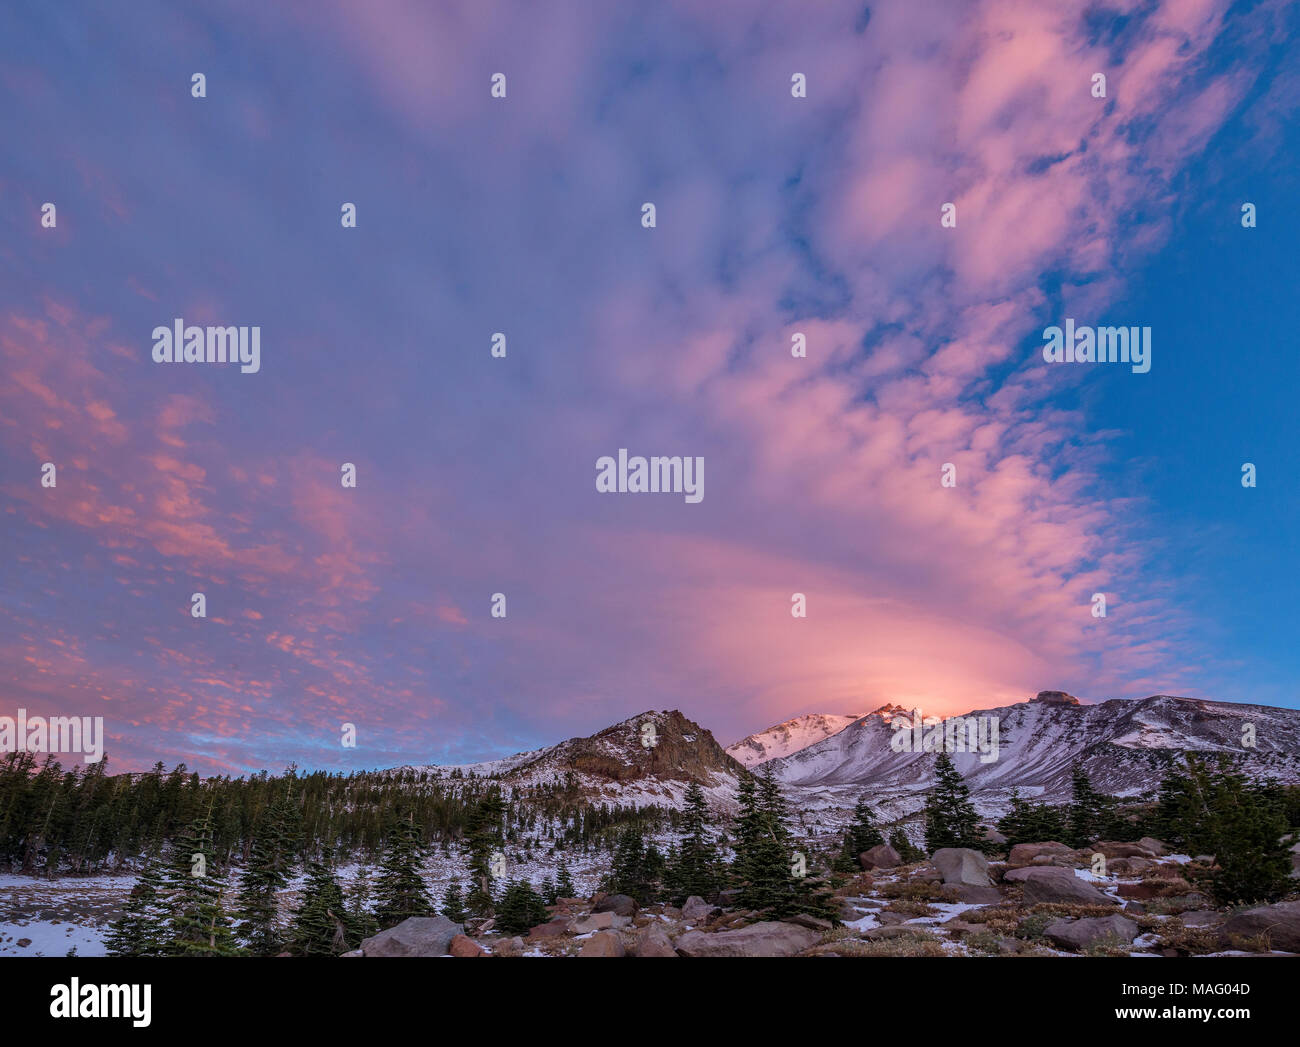 Sunrise, Lenticular Cloud, Mount Shasta, Shasta-Trinity National Forest, California - Stock Image